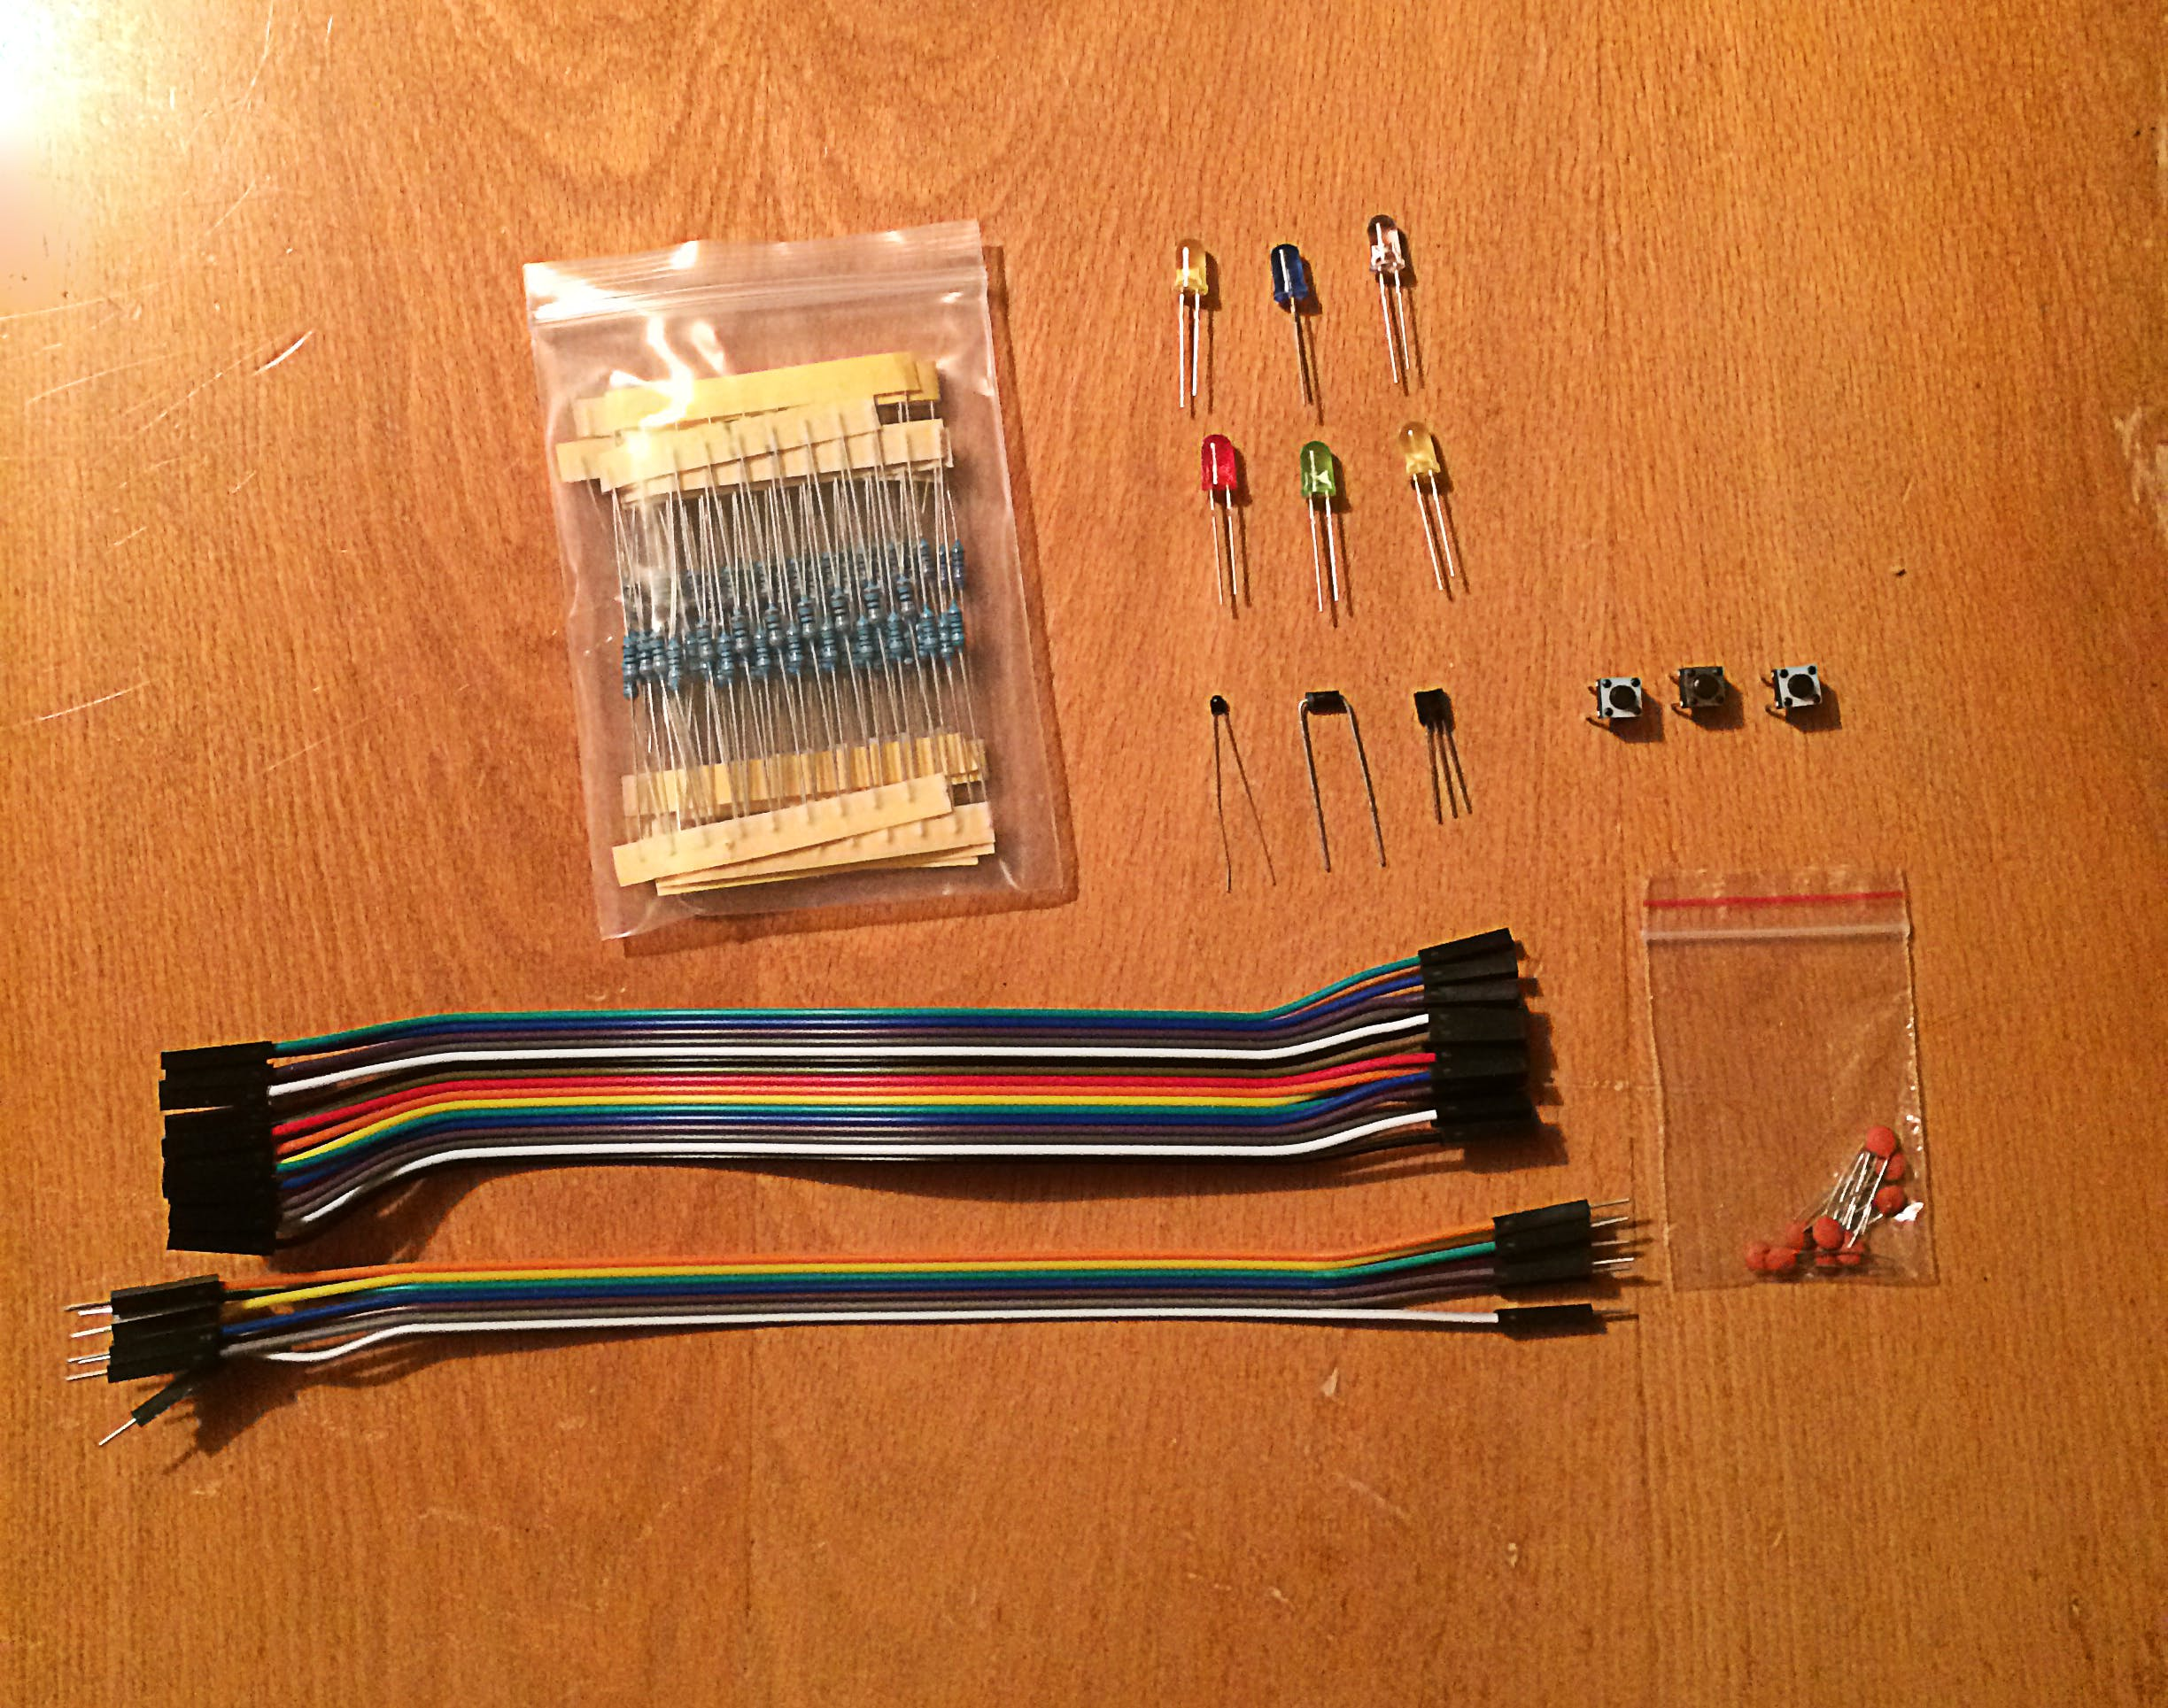 An example of some of the components you can get in a kit — the more components, the better!